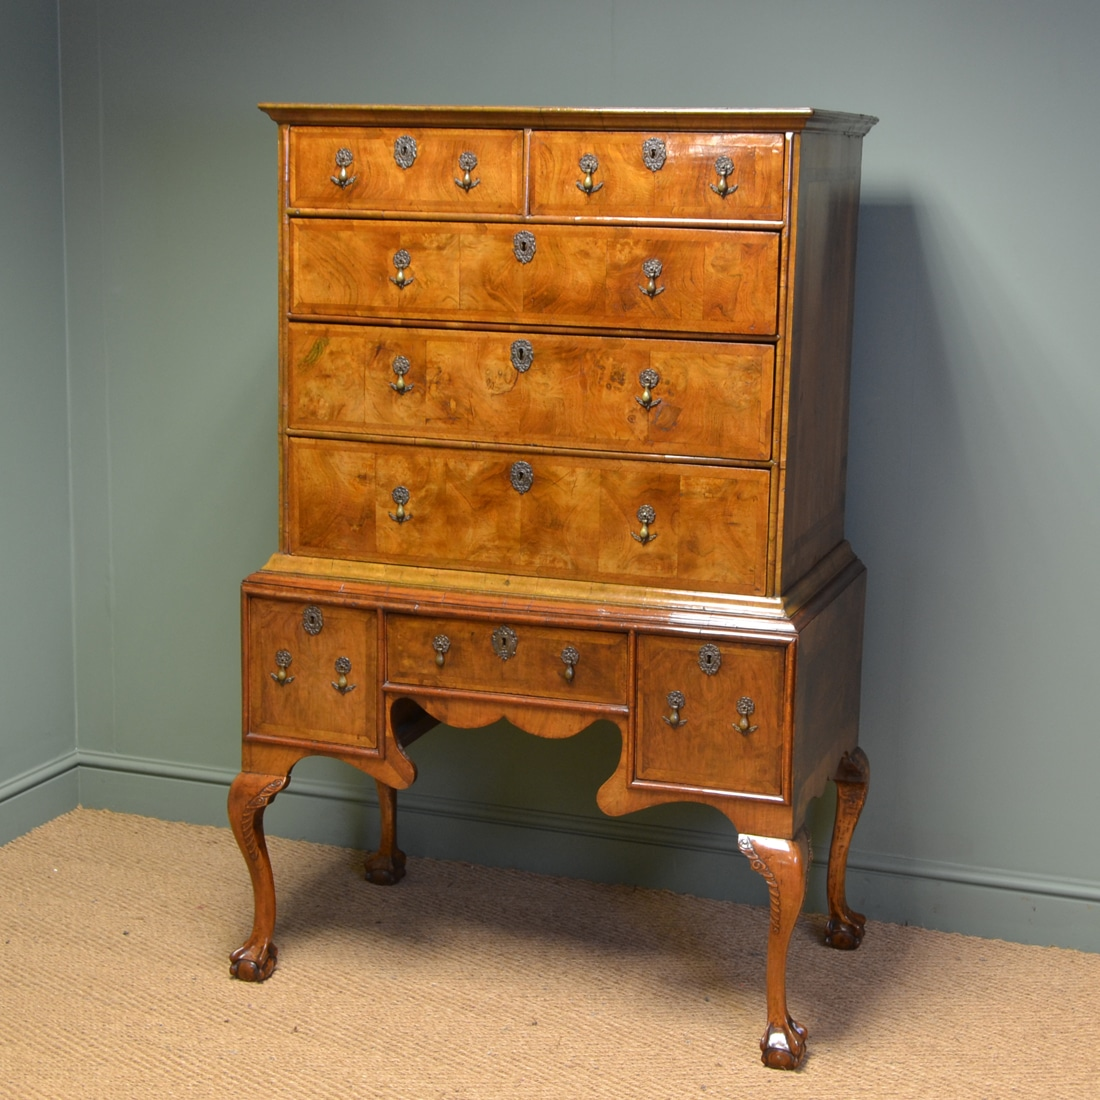 Magnificent Eighteenth Century Figured Walnut Antique Chest On Stand